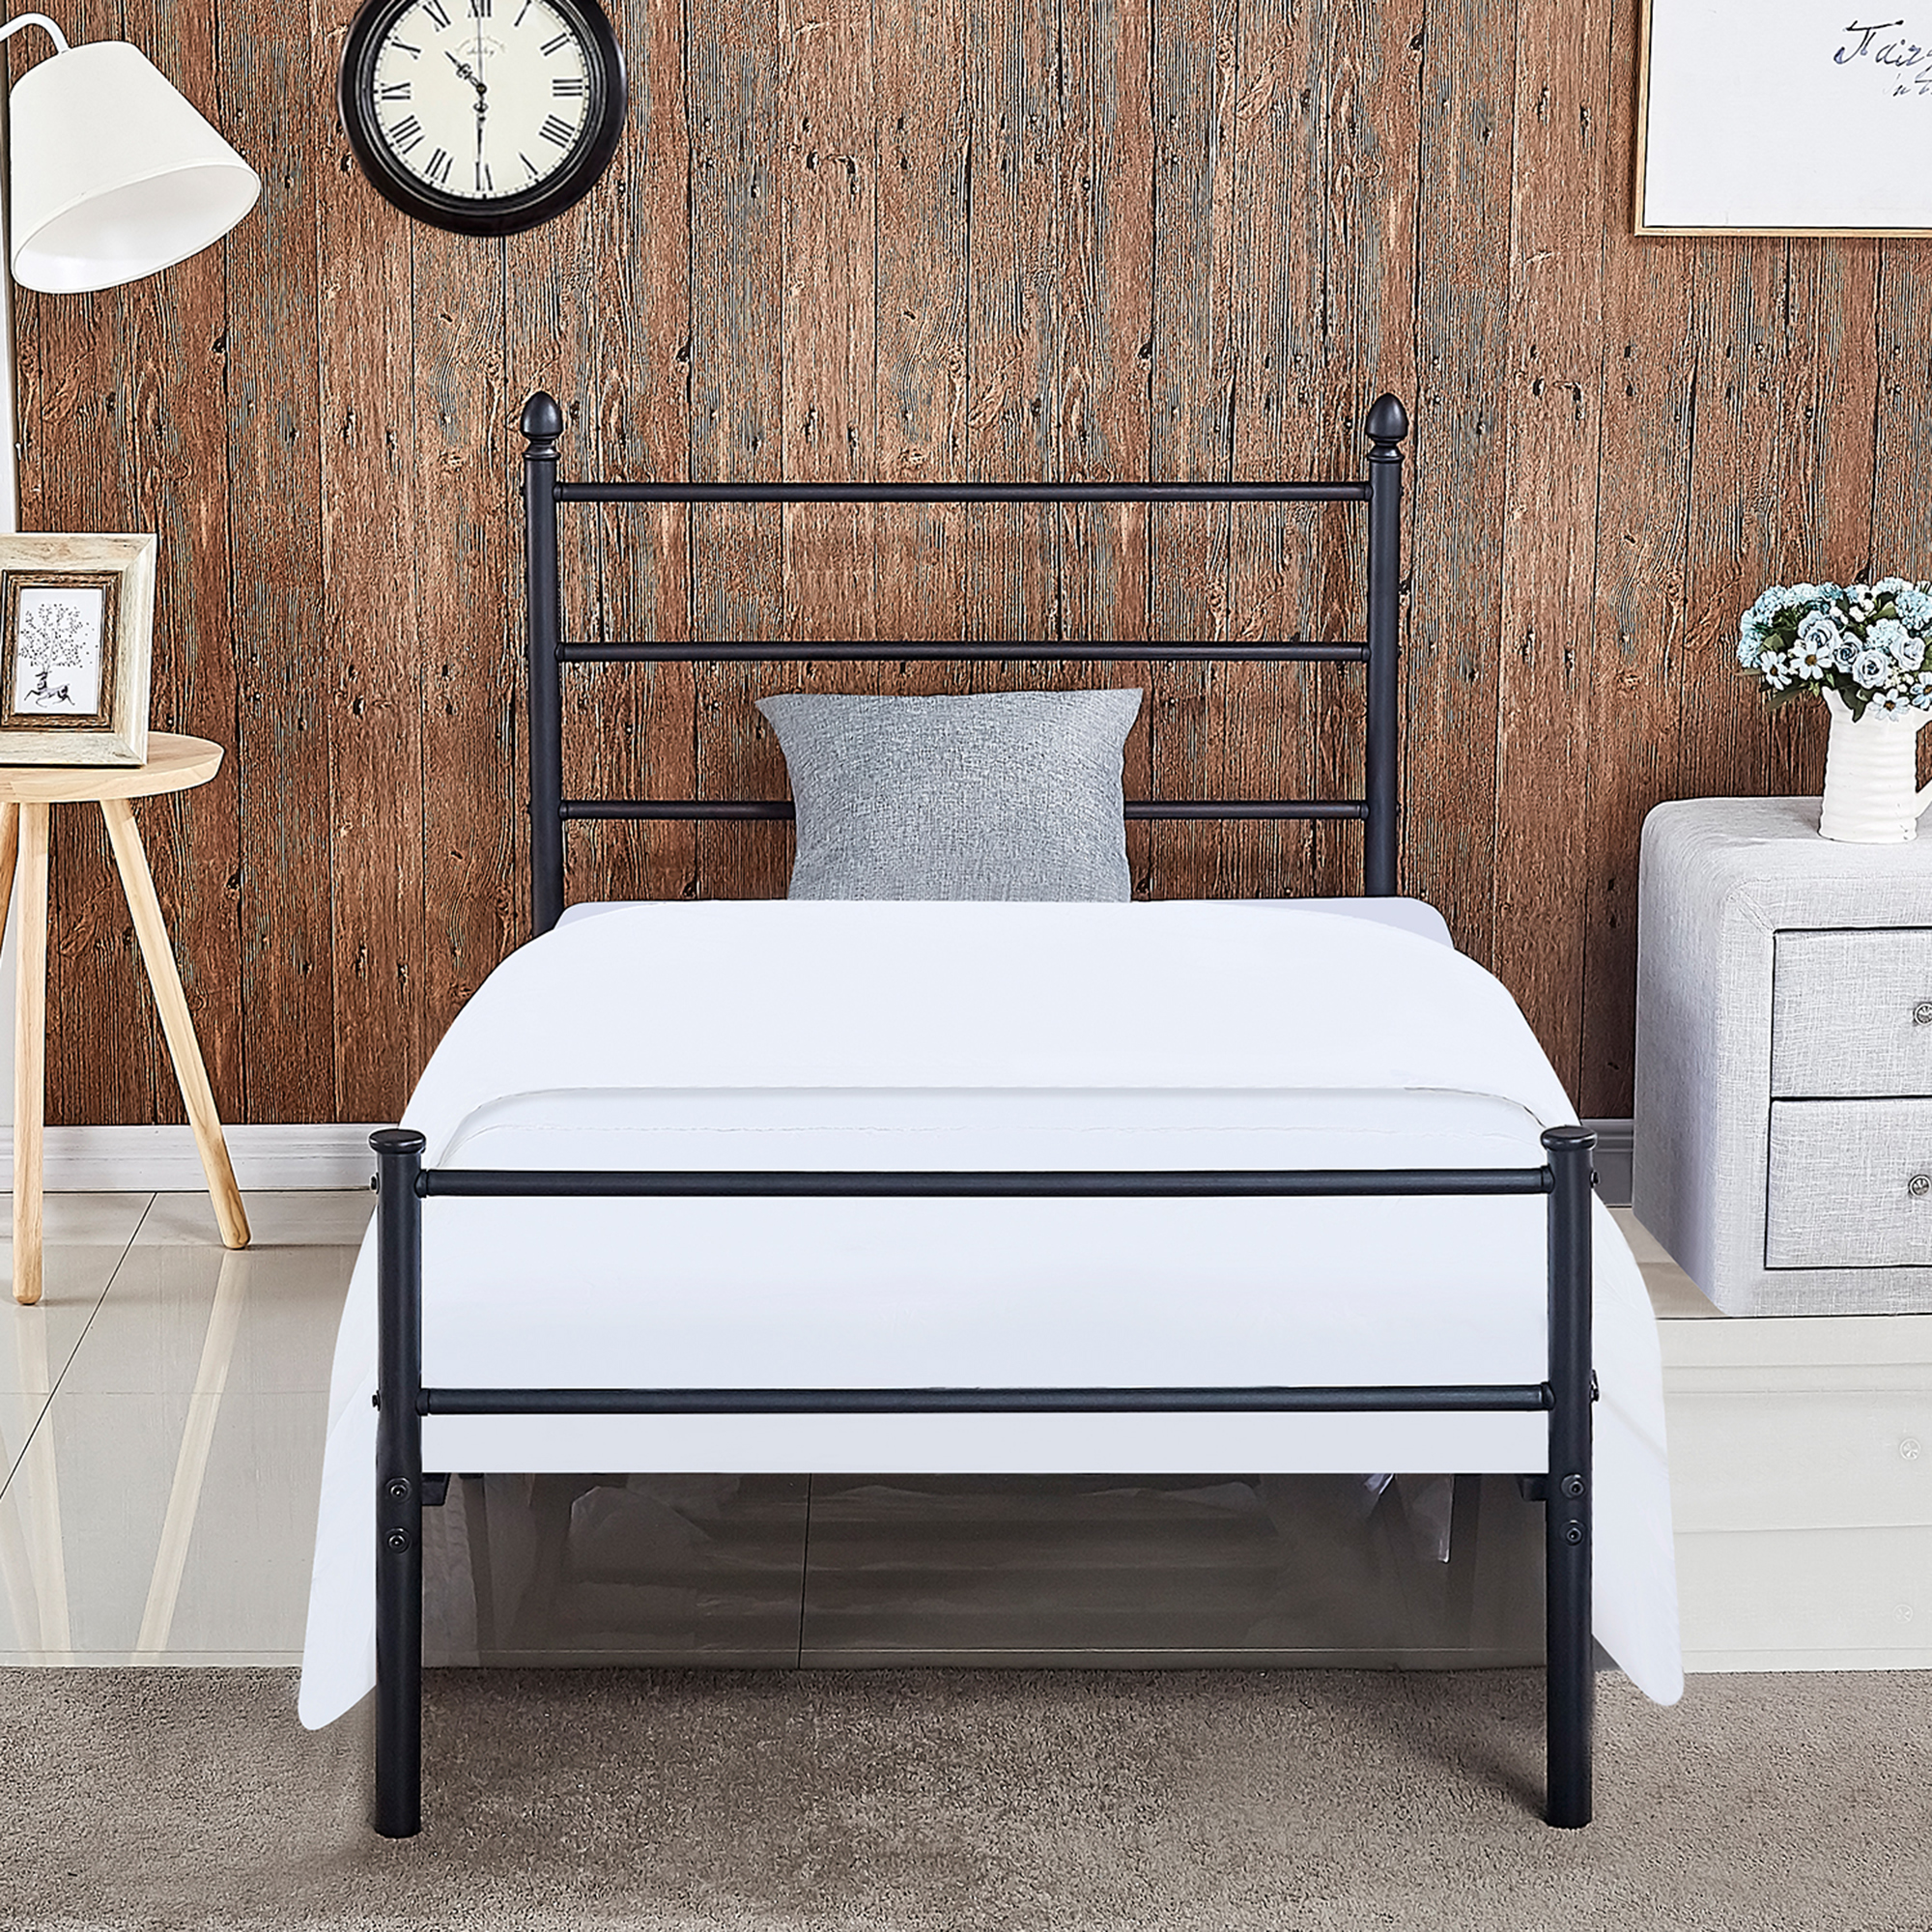 Under Bed Storage Frame Metal Steel Slat Platform Bed Frame Easy Assembly With Under Bed Storage W Headboard Twin Full Queen Size